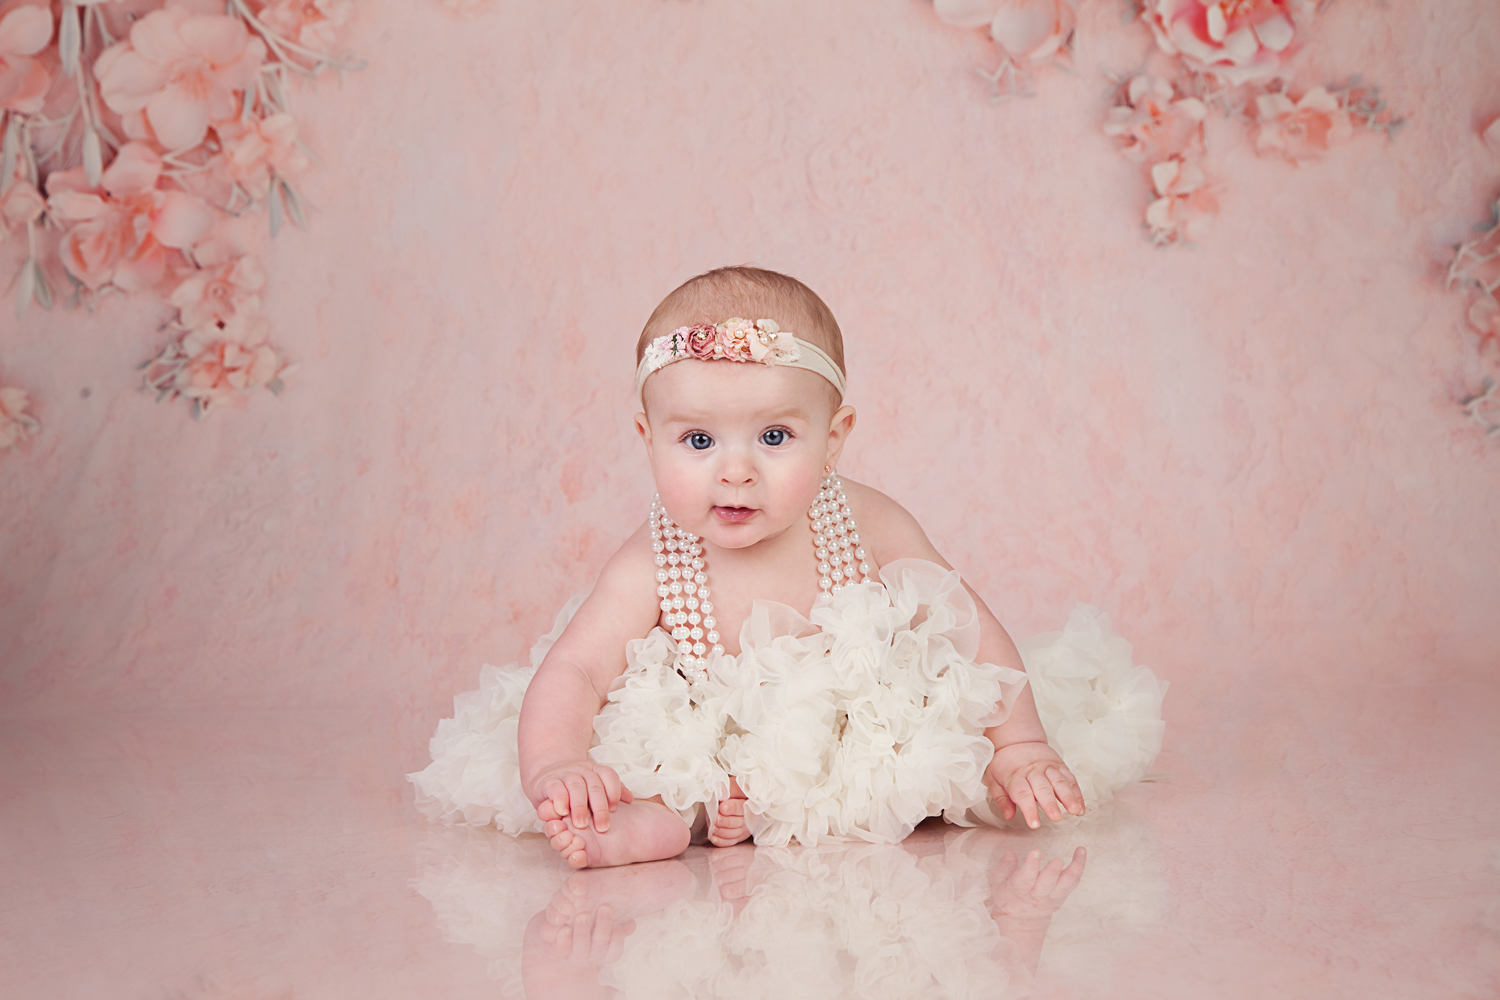 baby-sitter-session-pink-background